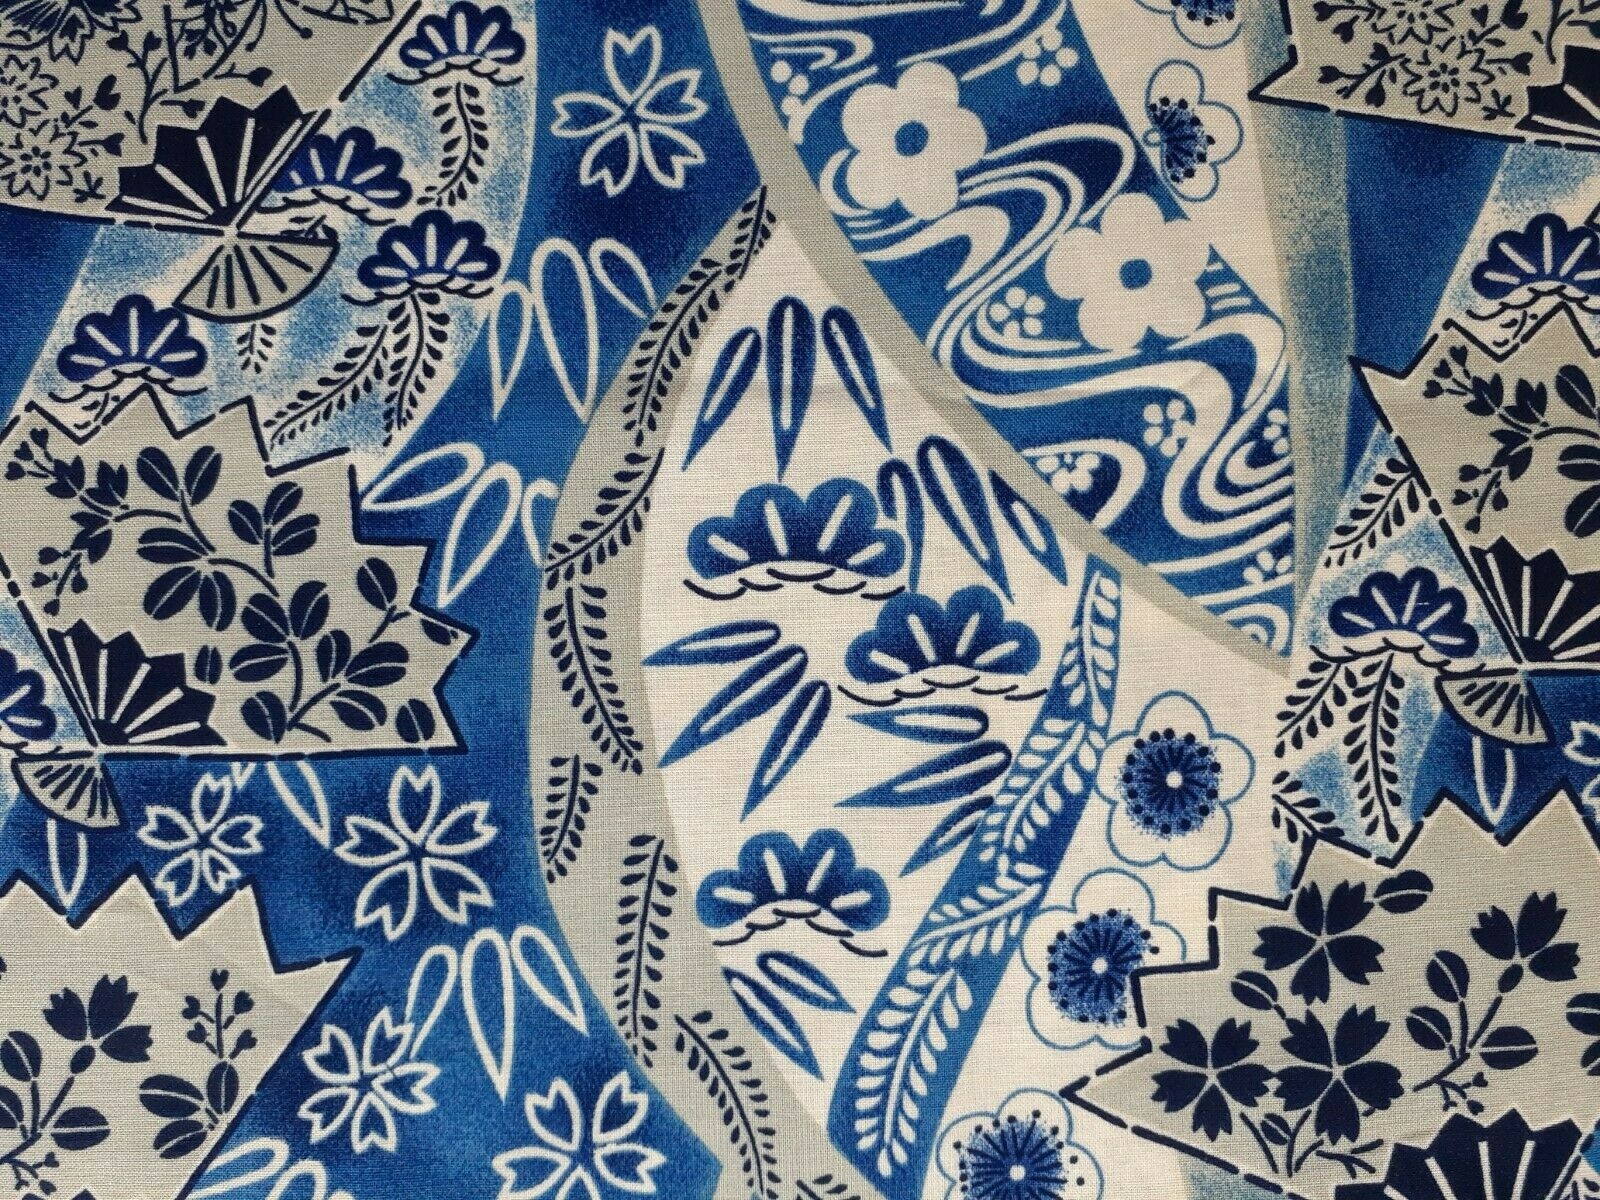 1 SCRAP 9 L X 21 W Fat Eighth Of 100 Cotton Fabric - Oriental Japanese Print  - $2.79